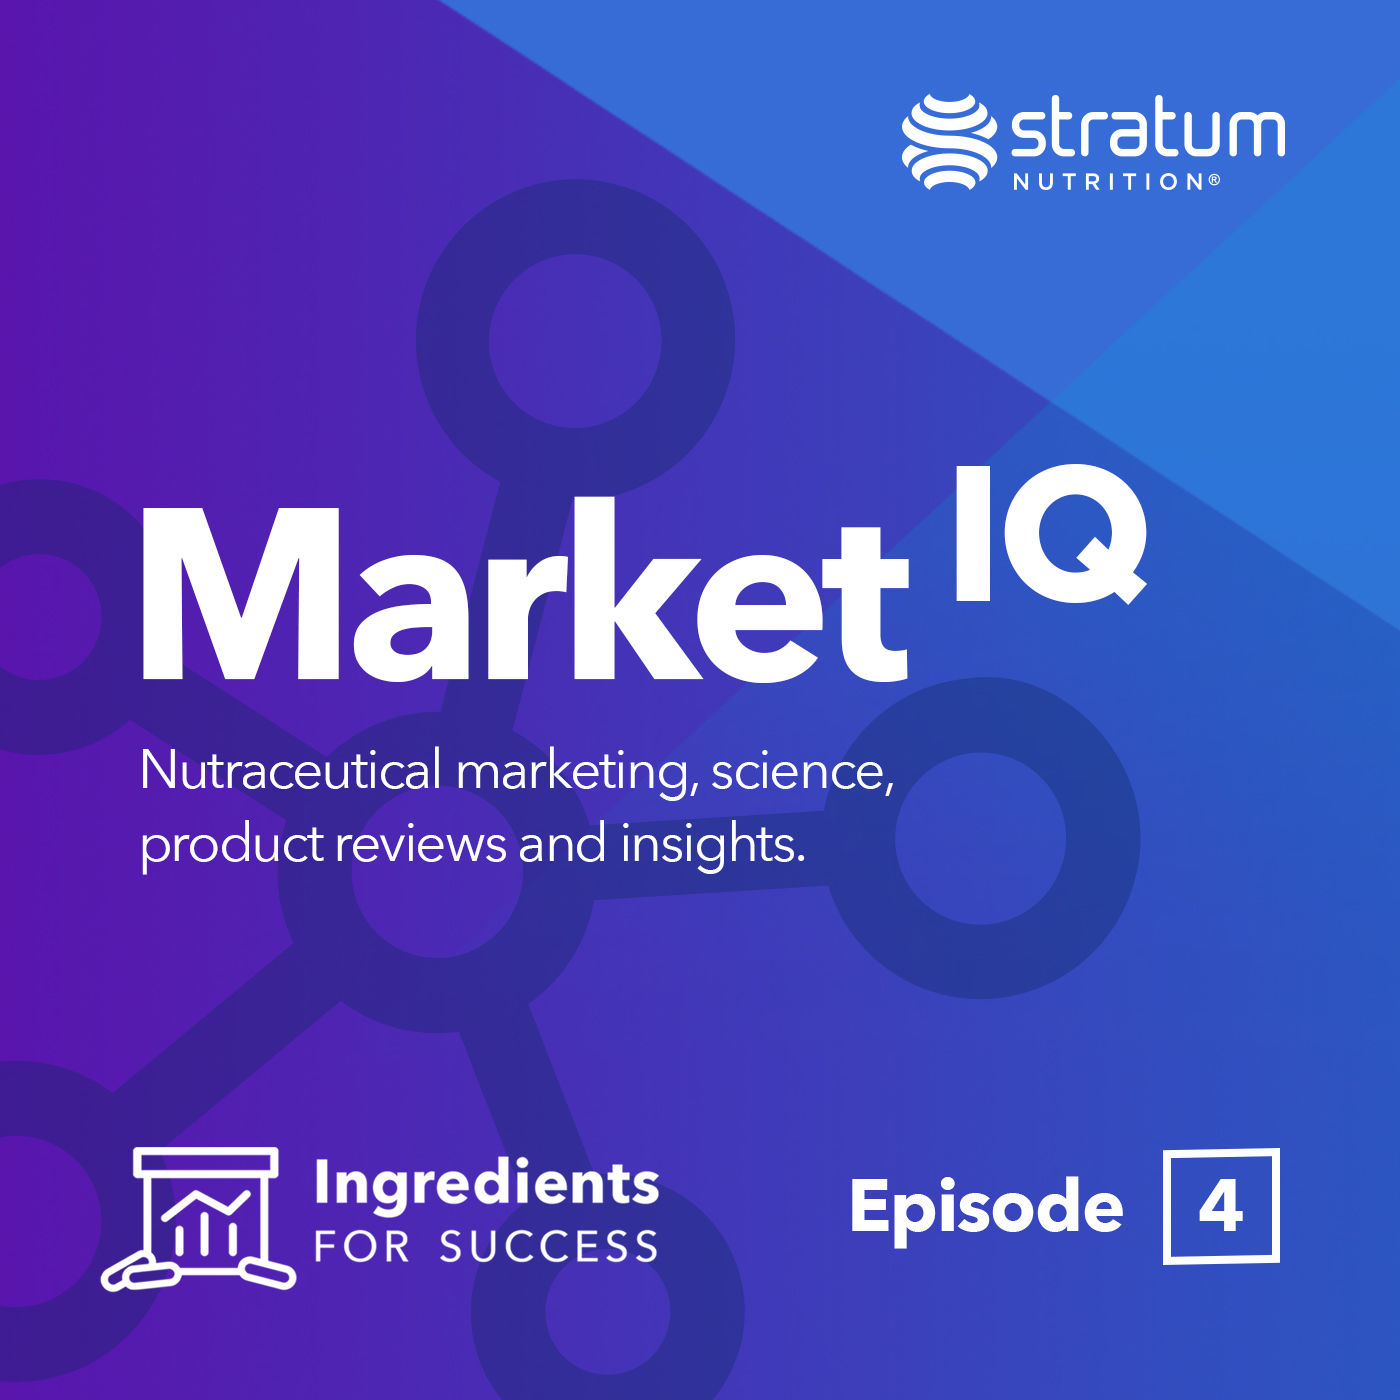 Vegan Nutrition & Supplements are No Fad: Market IQ Episode with Dr. Bailey